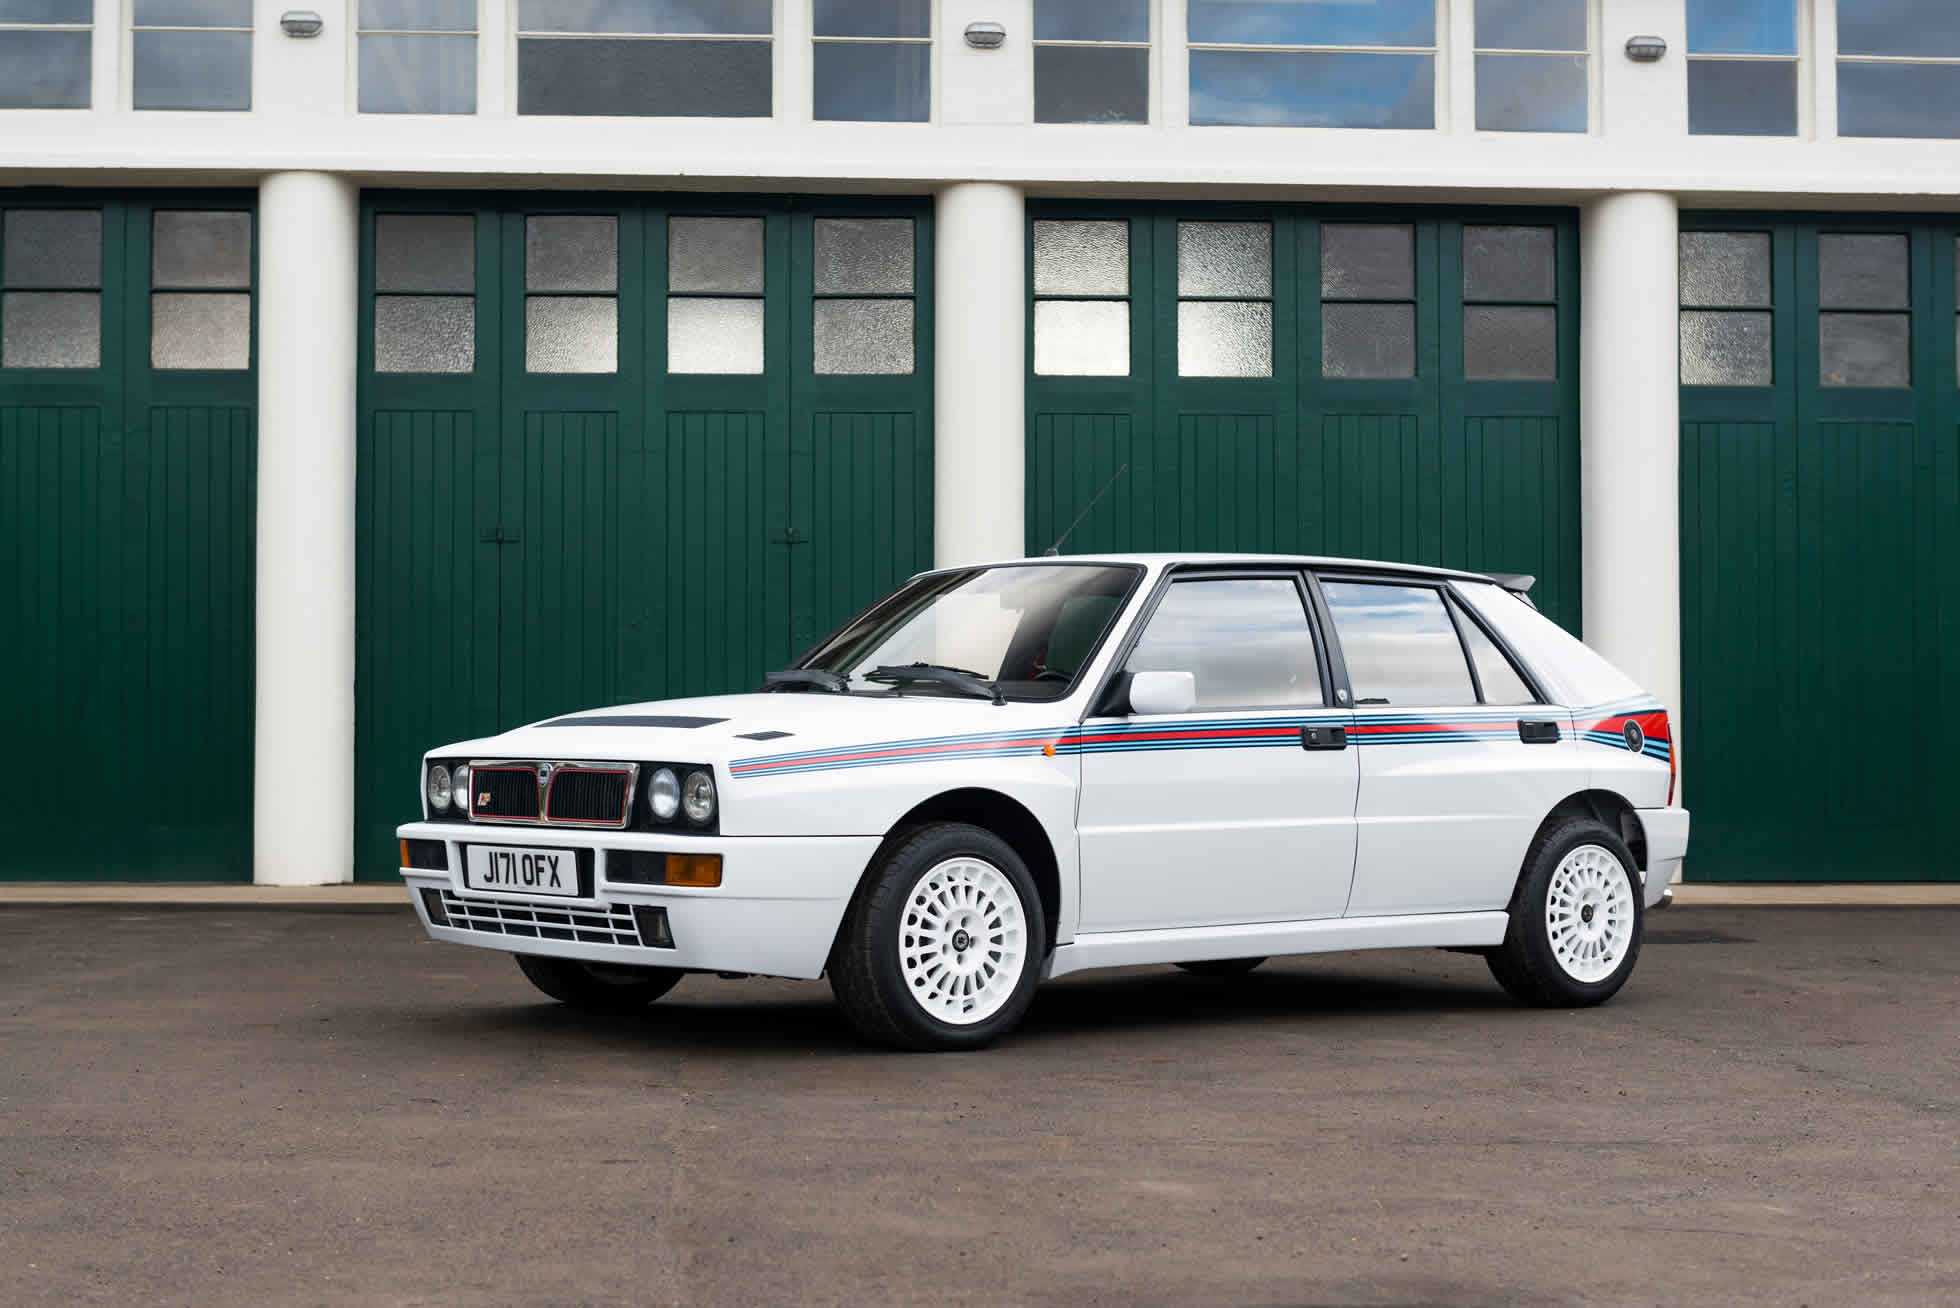 For Sale 1992 Lancia Delta Integrale EVO 'Martini 5' side views